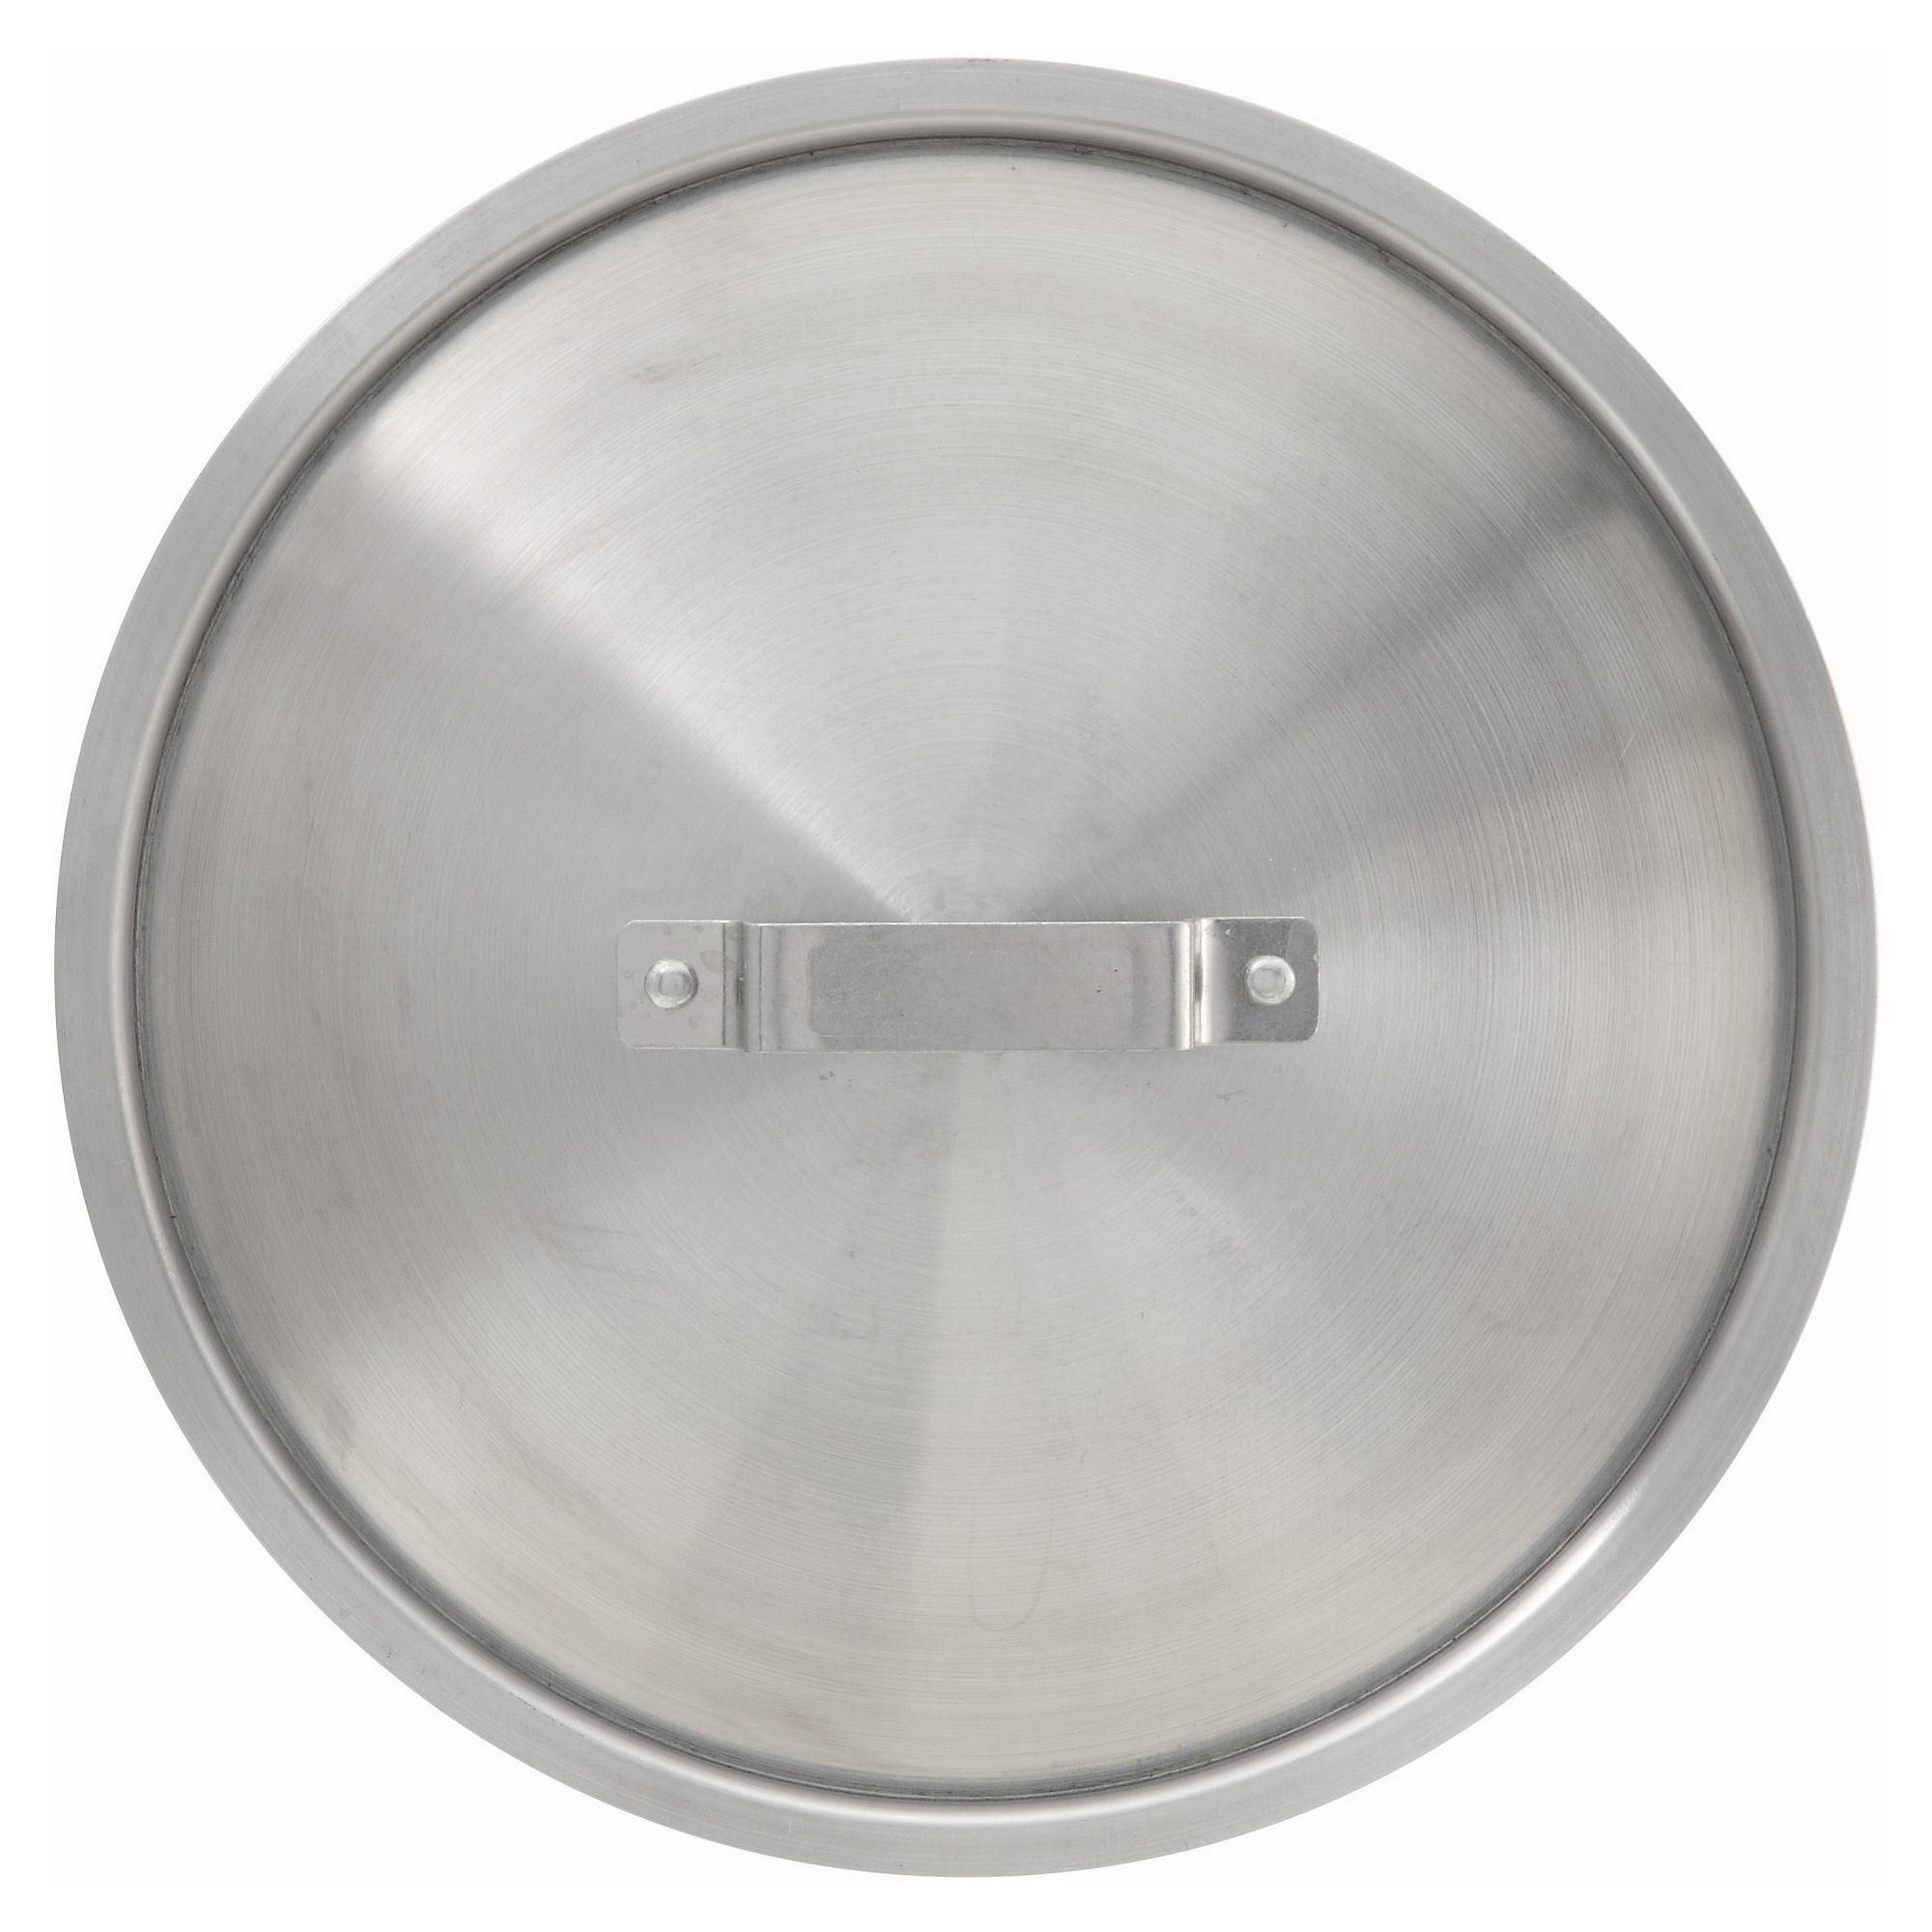 Winco AXS-80C Aluminum Pot Cover for AXS-80, AXBZ-24, AXHH-80, AXHB-24